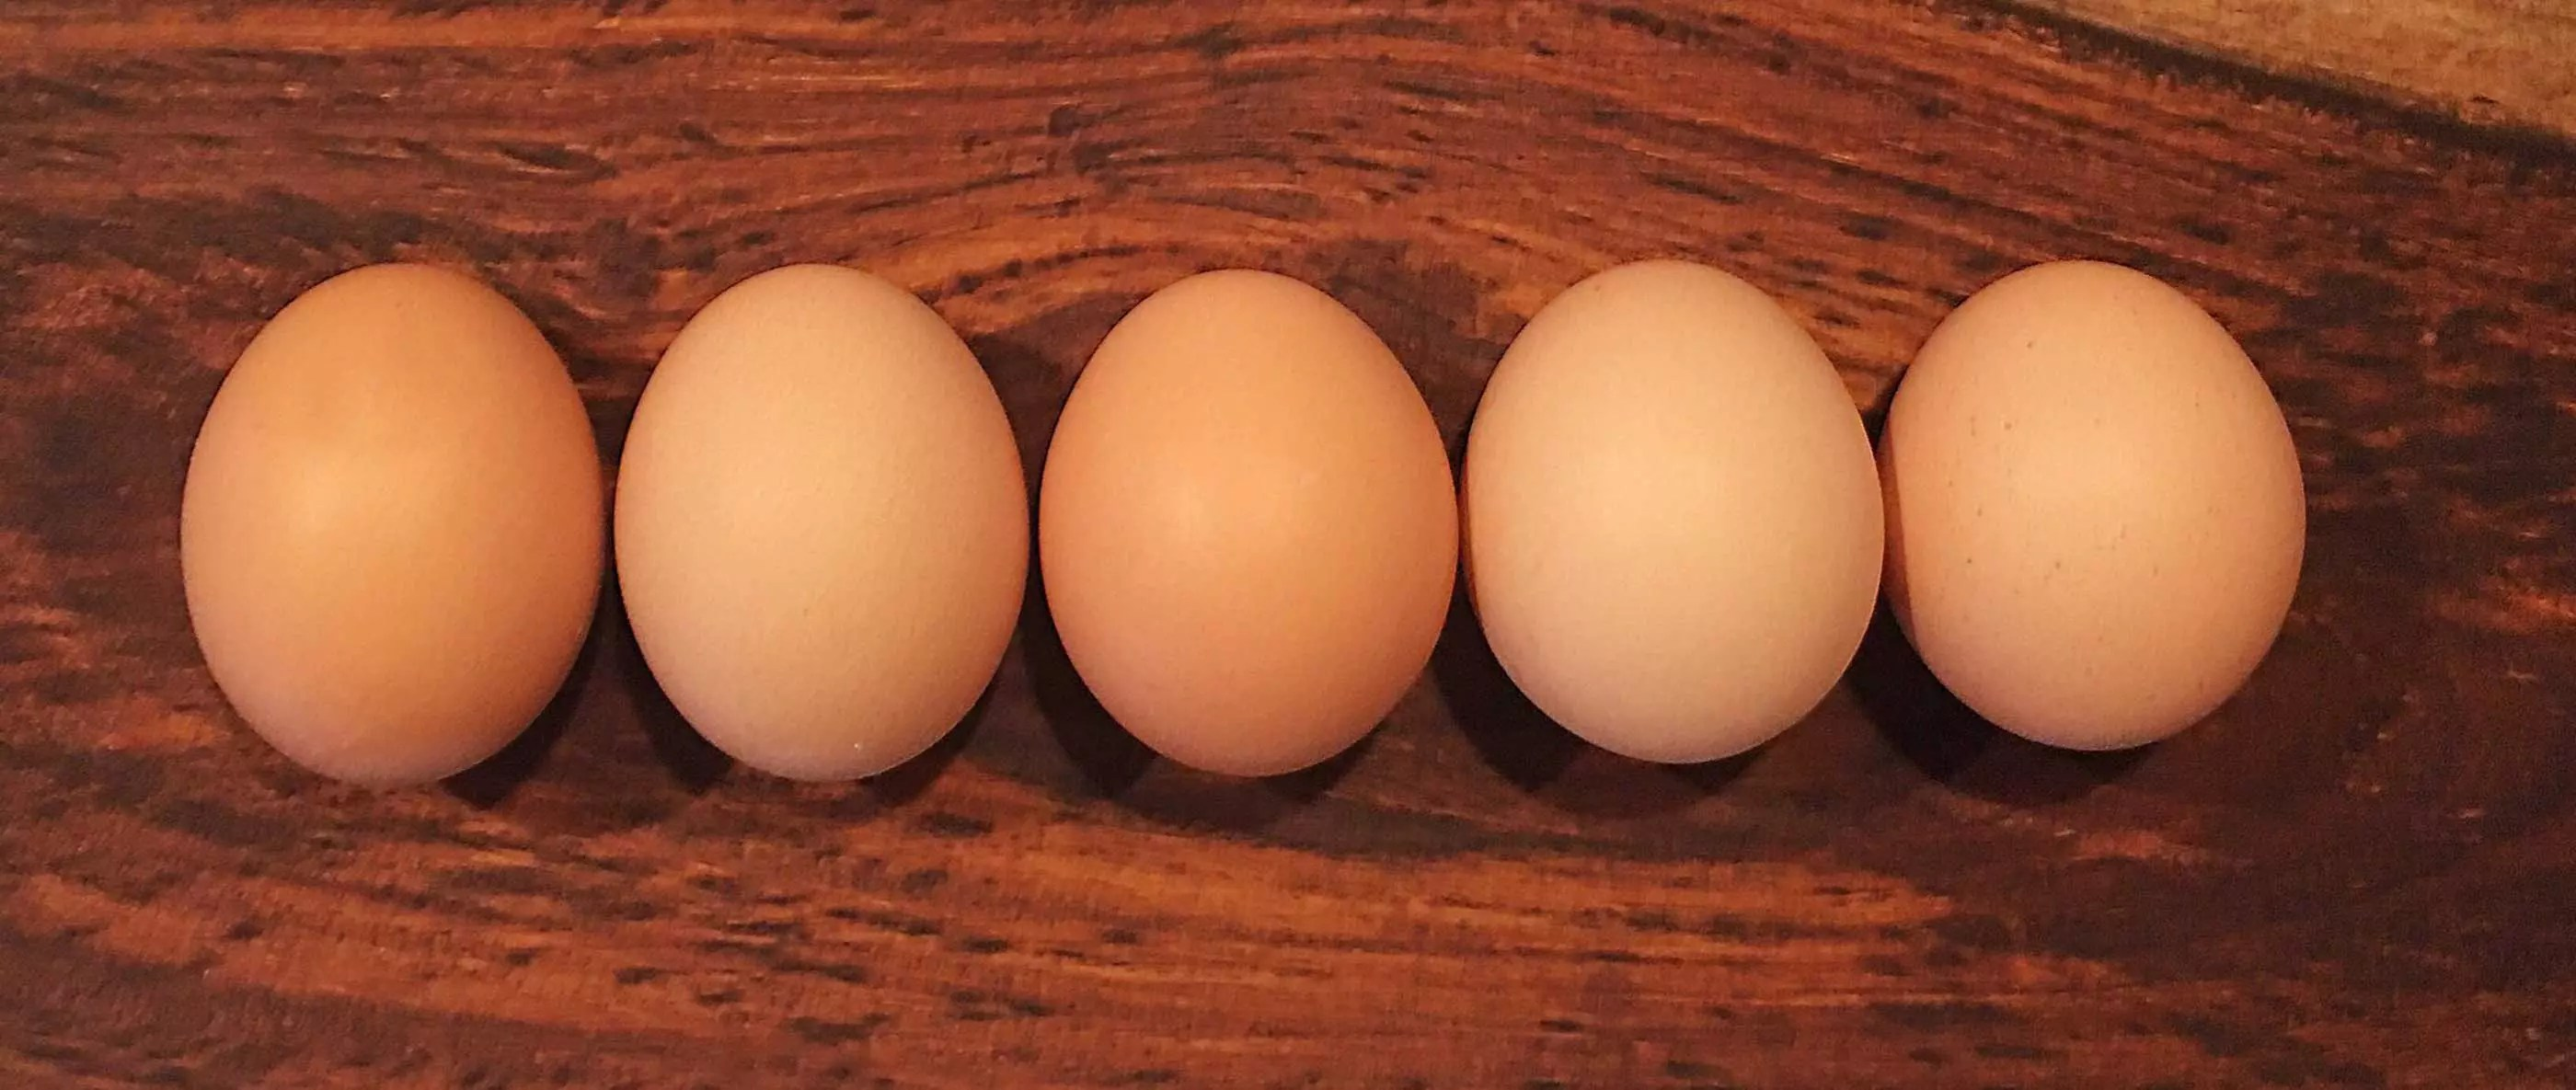 The Chicken Eggs are Coming